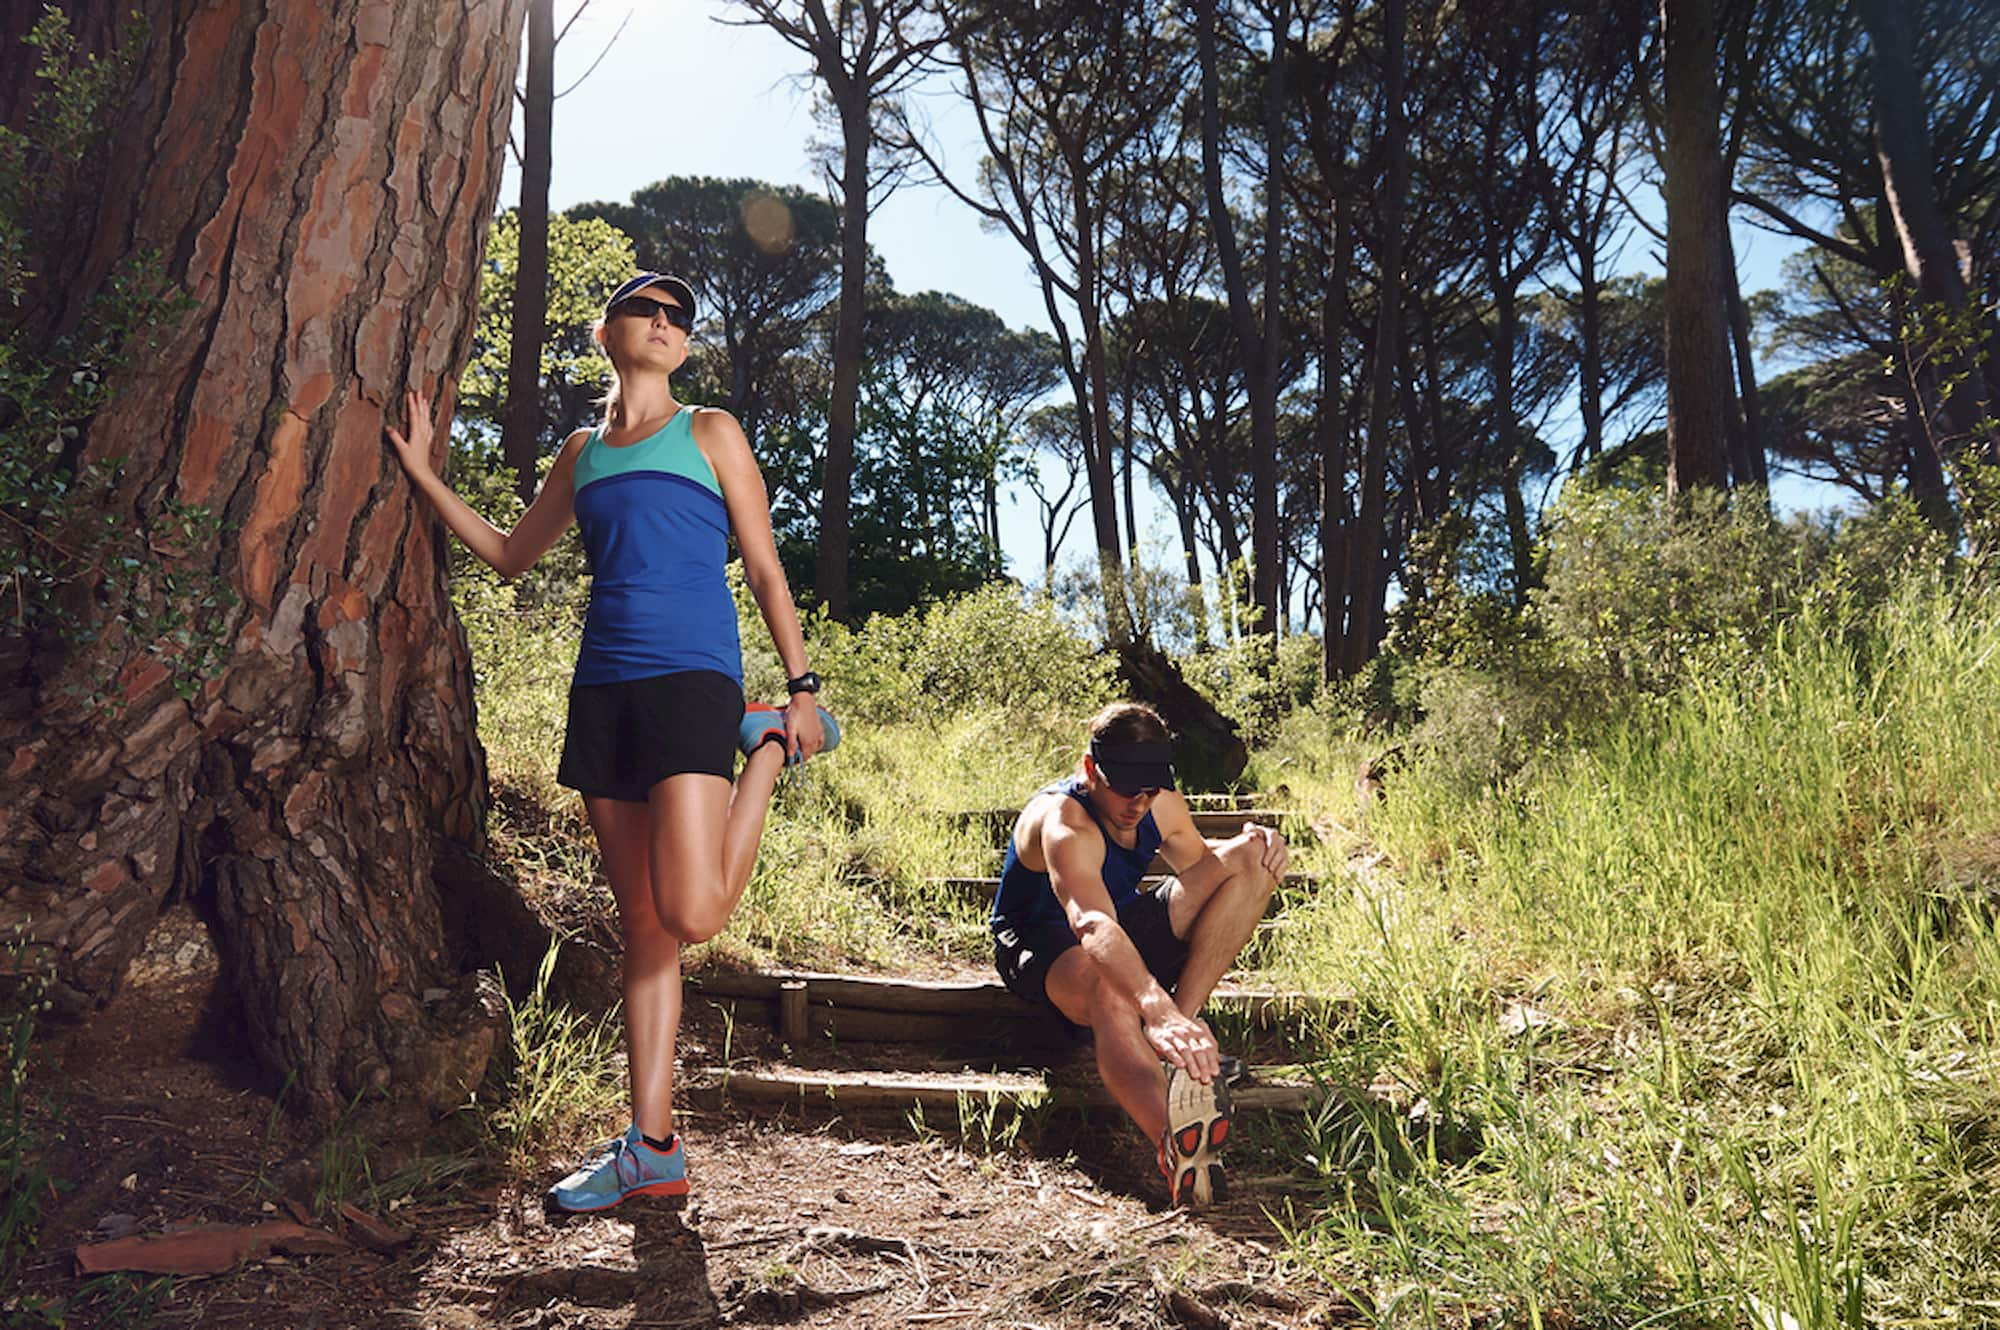 Trail runners stretching on forested trail.